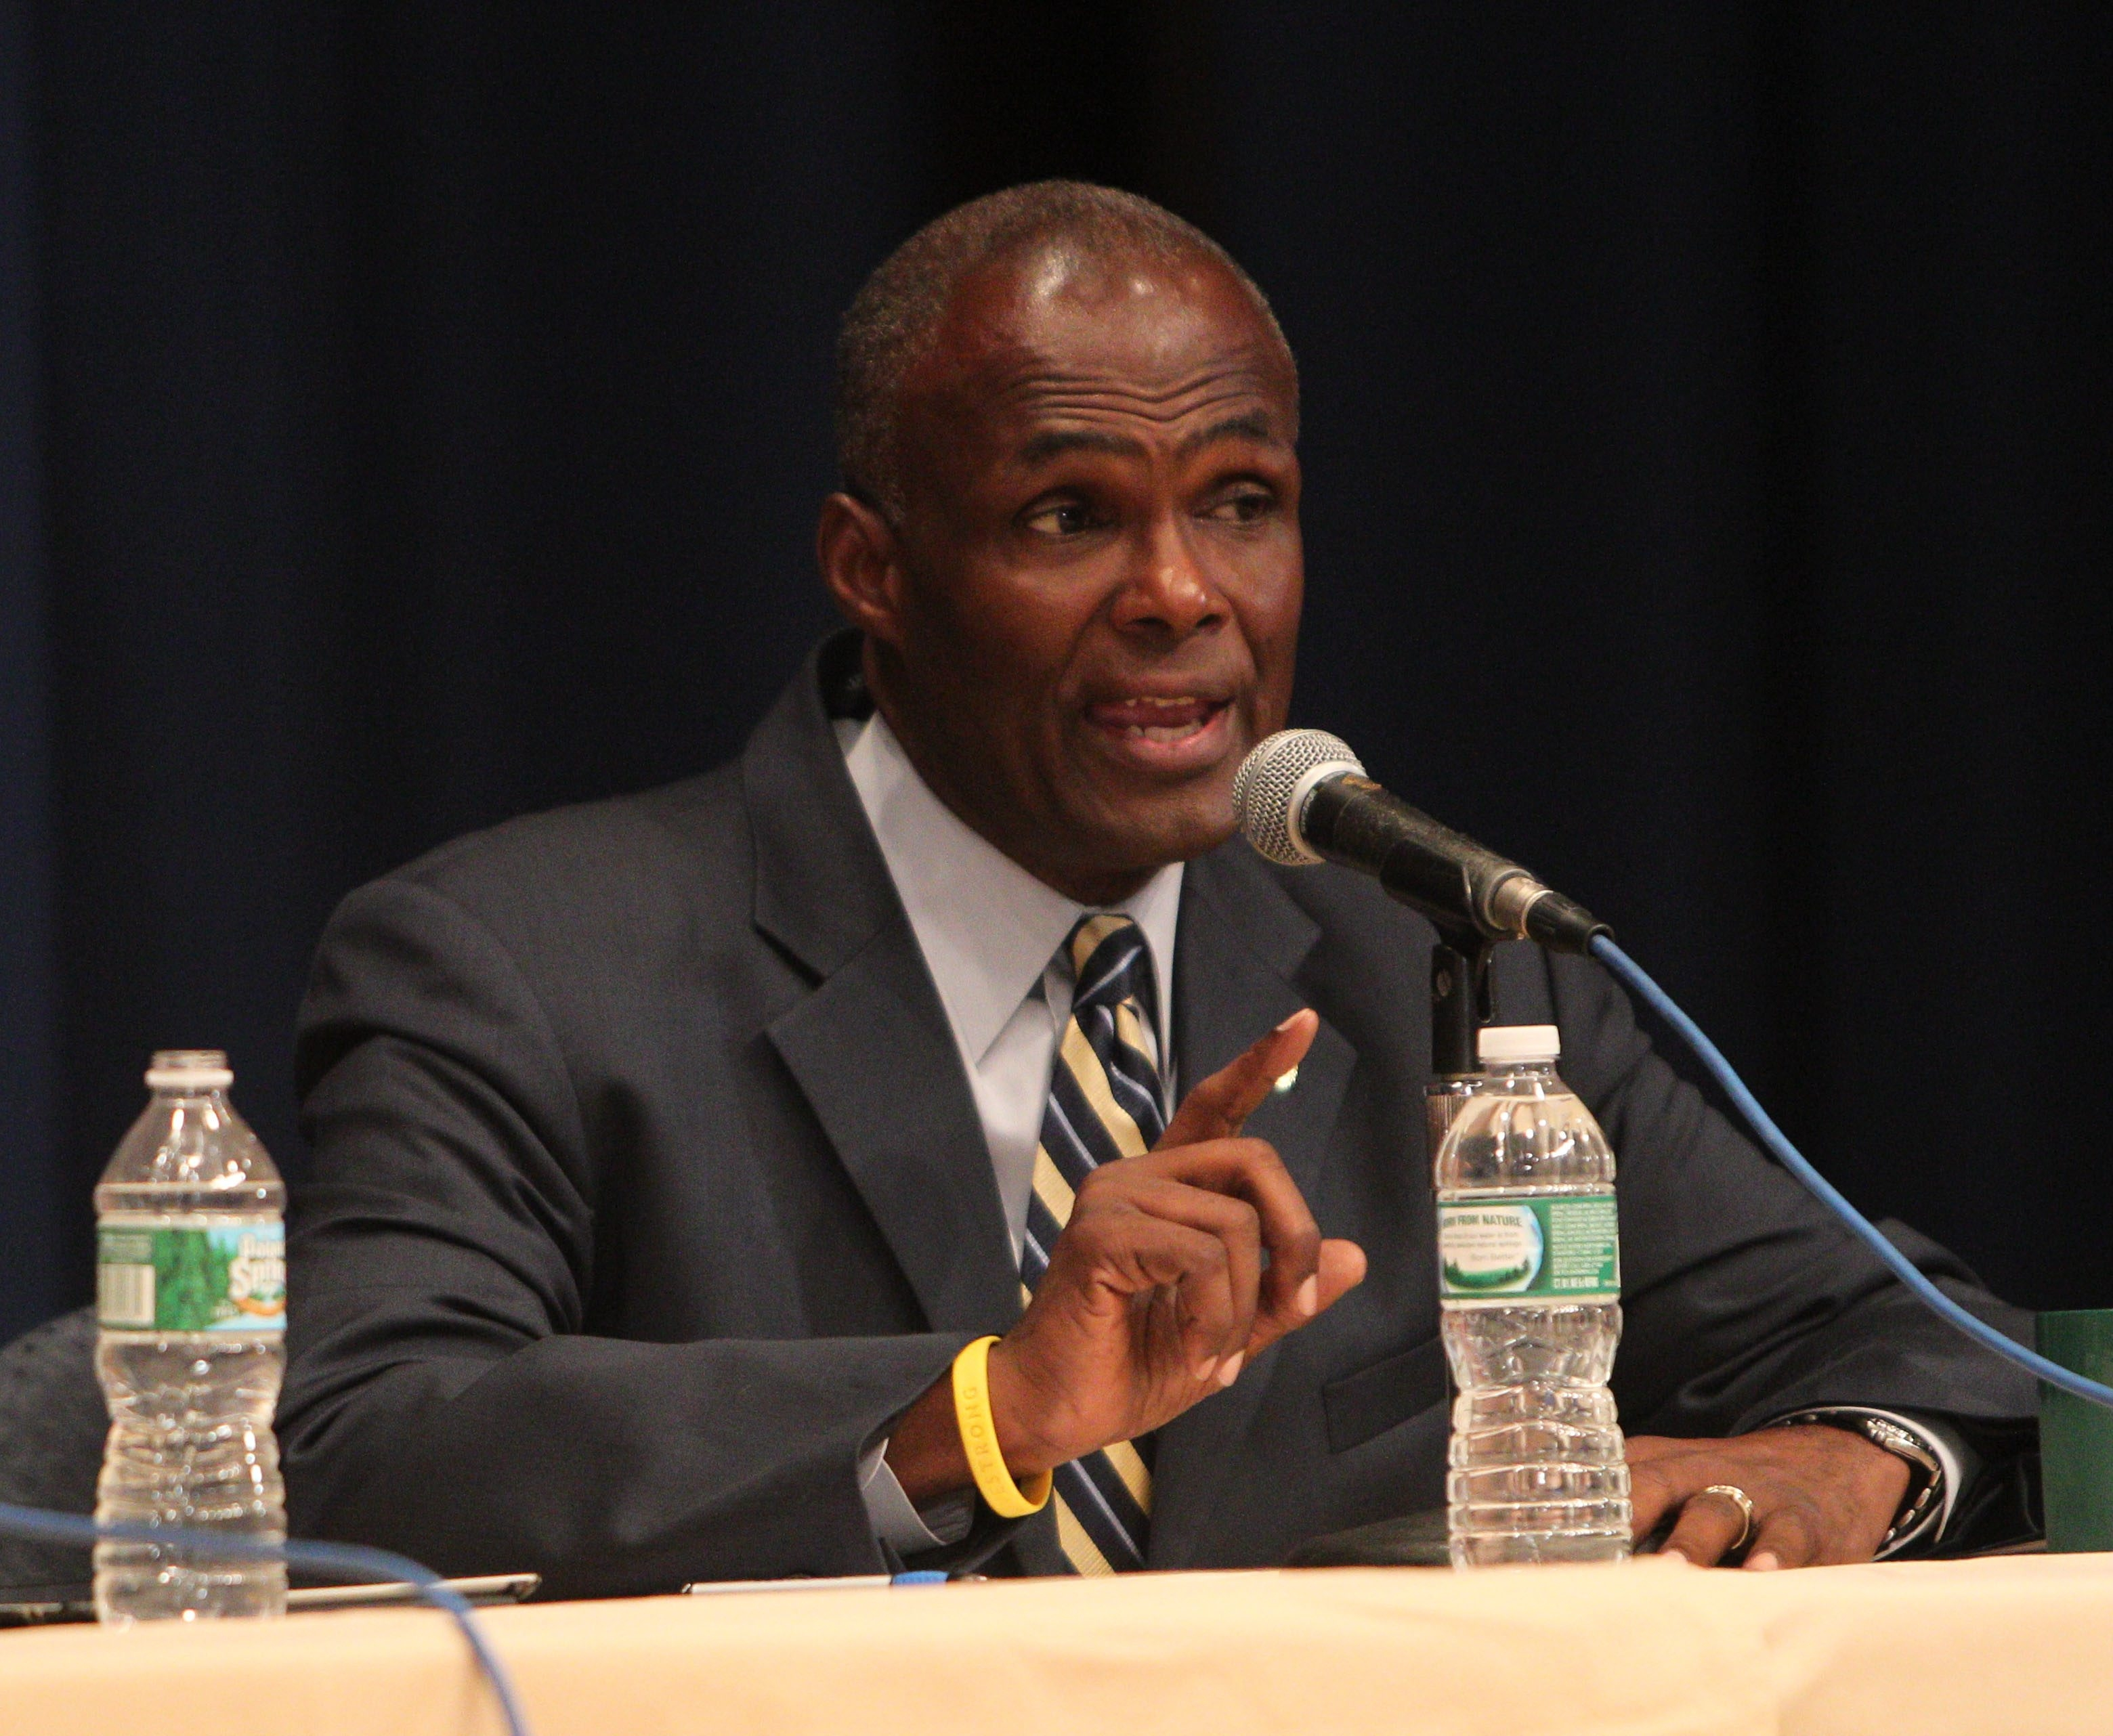 Former mayoral candidate Bernard Tolbert, shown in a file photo participating in a Mayoral Forum last summer, has announced he will seek one of the three at-large seats on the Buffalo School Board.